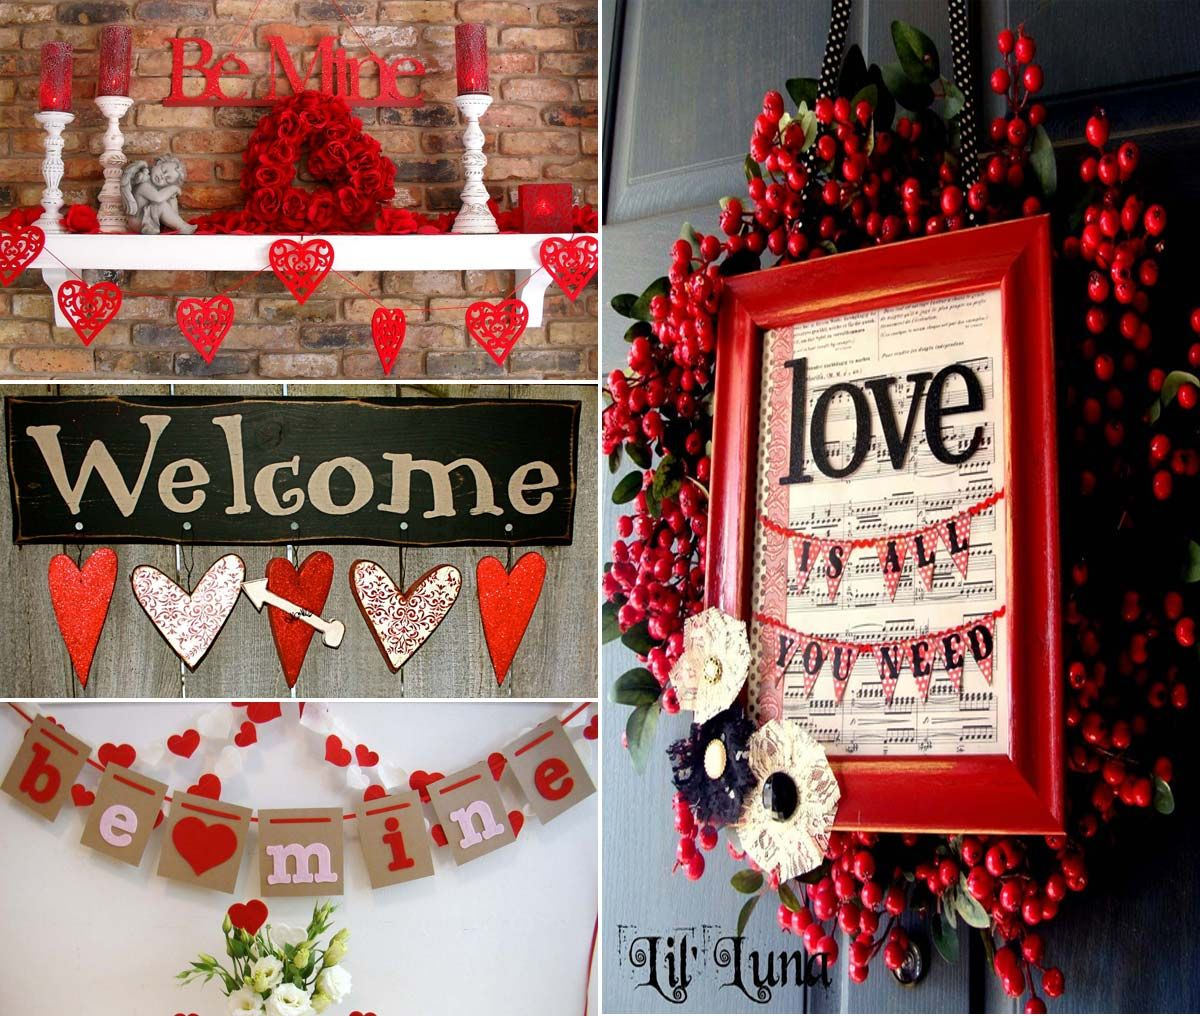 Use Christmas Wreaths And Candles But Add Valentine's Hearts And